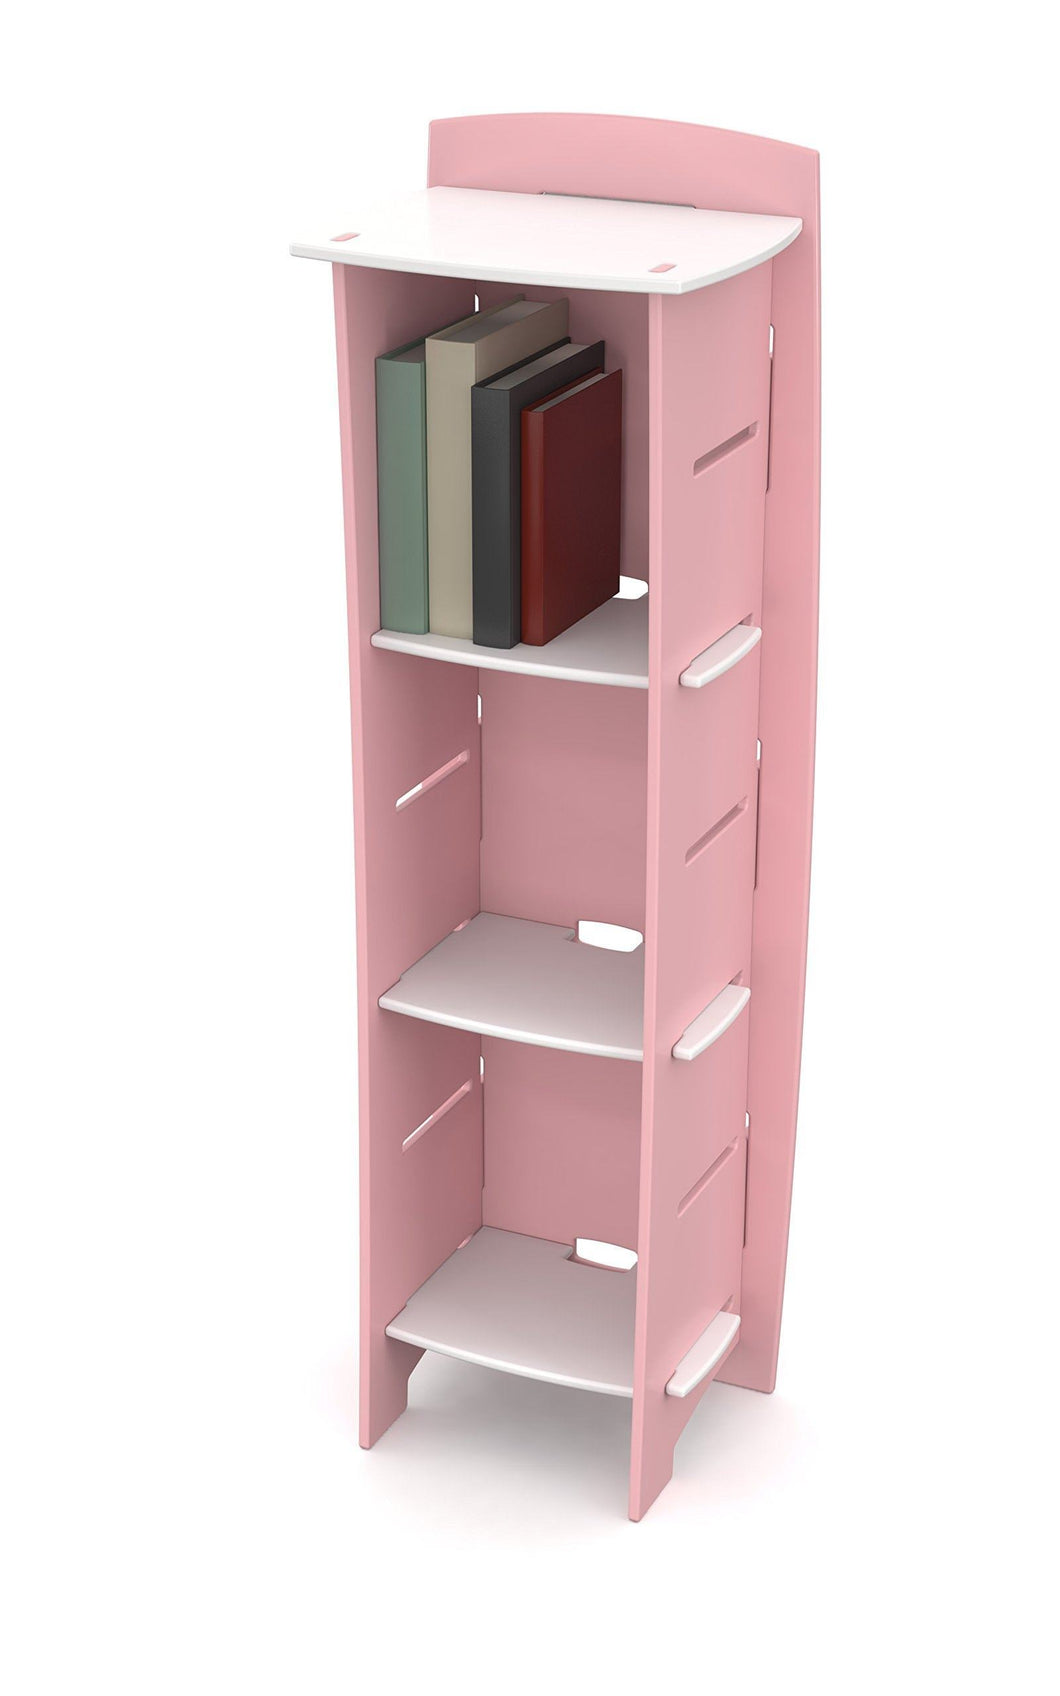 Order now legare furniture childrens furniture 3 tier shelf bookcase storage organizer with adjustable shelves for kids bedroom pink and white